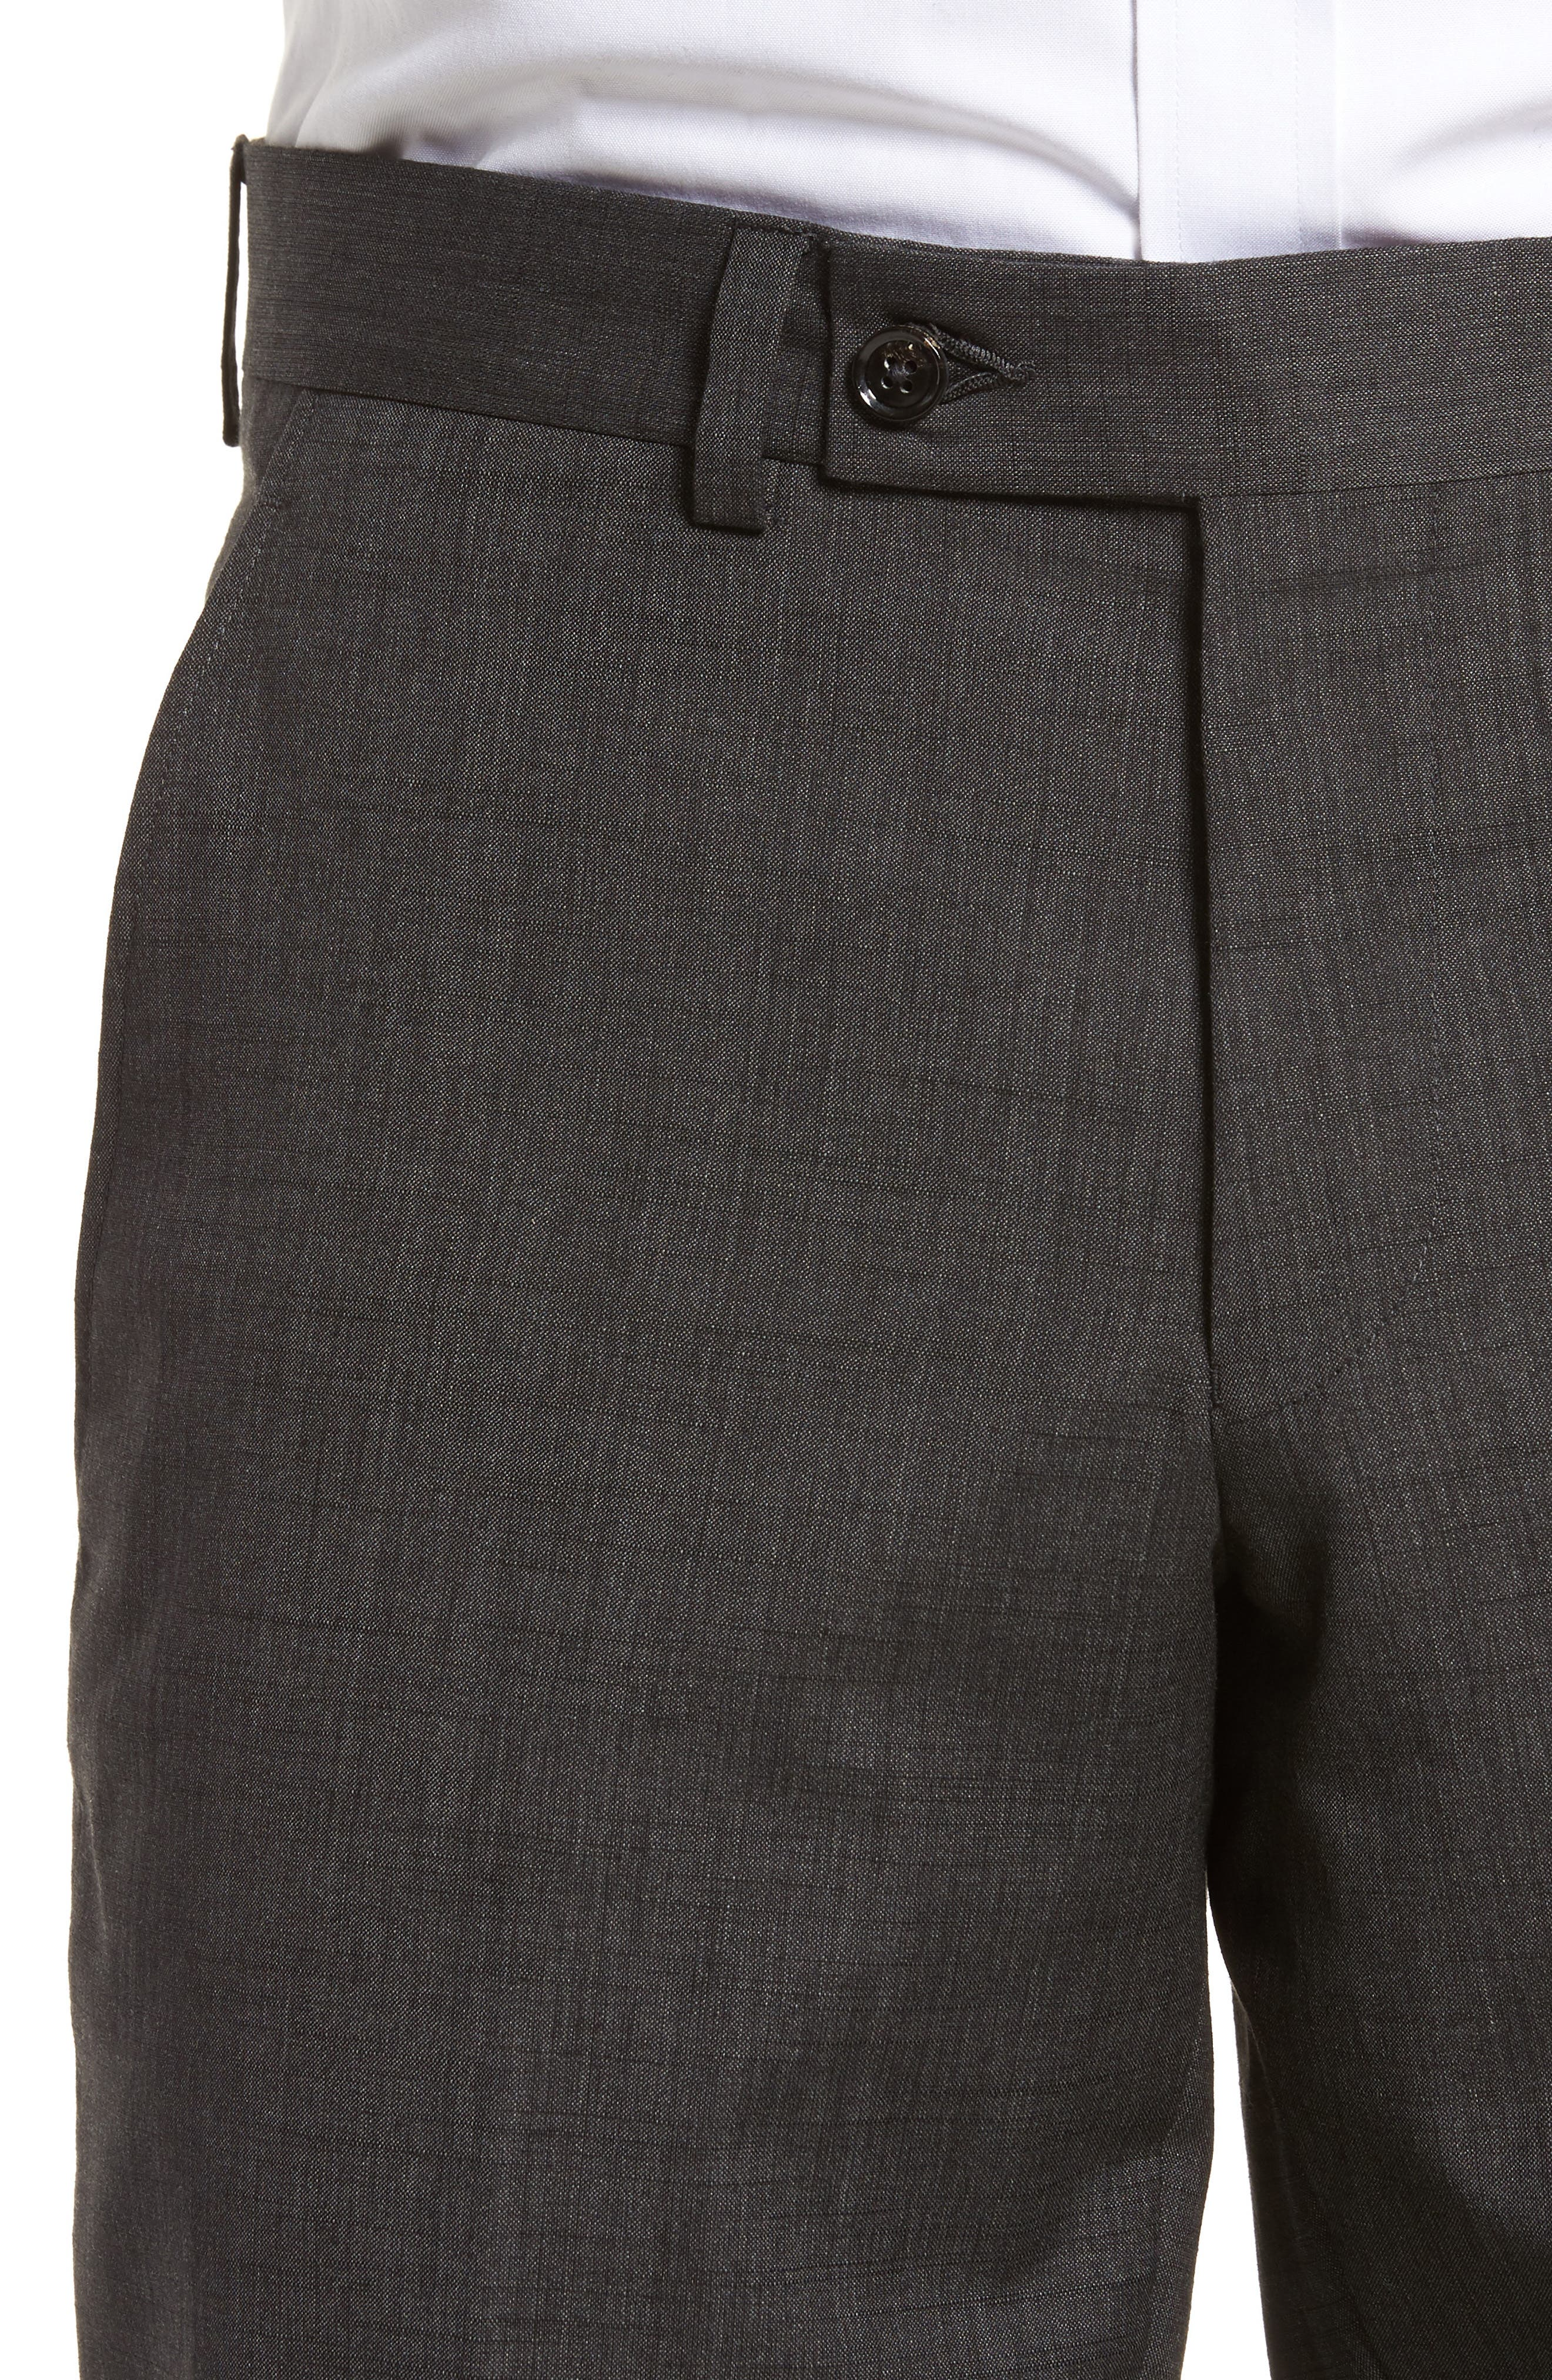 Jerome Flat Front Solid Wool & Cotton Trousers,                             Alternate thumbnail 4, color,                             Charcoal